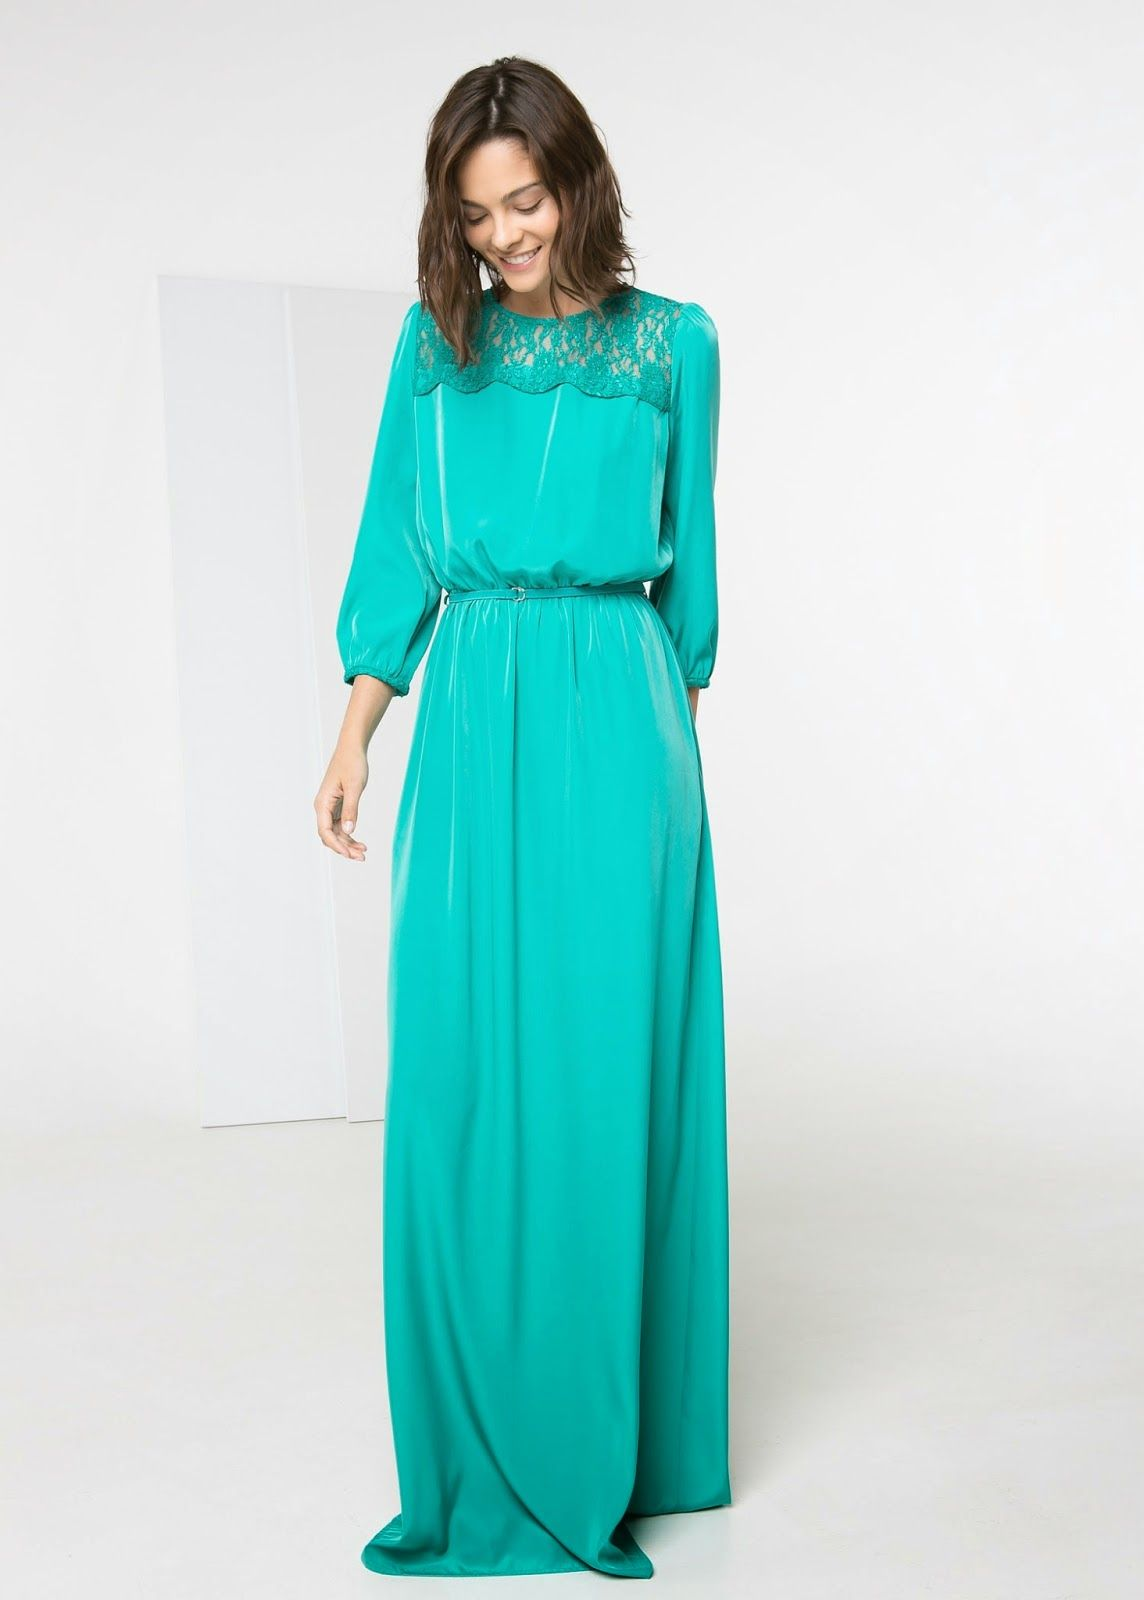 One and Done: Solid Maxi Dress Finds | Maxi dress with sleeves ...